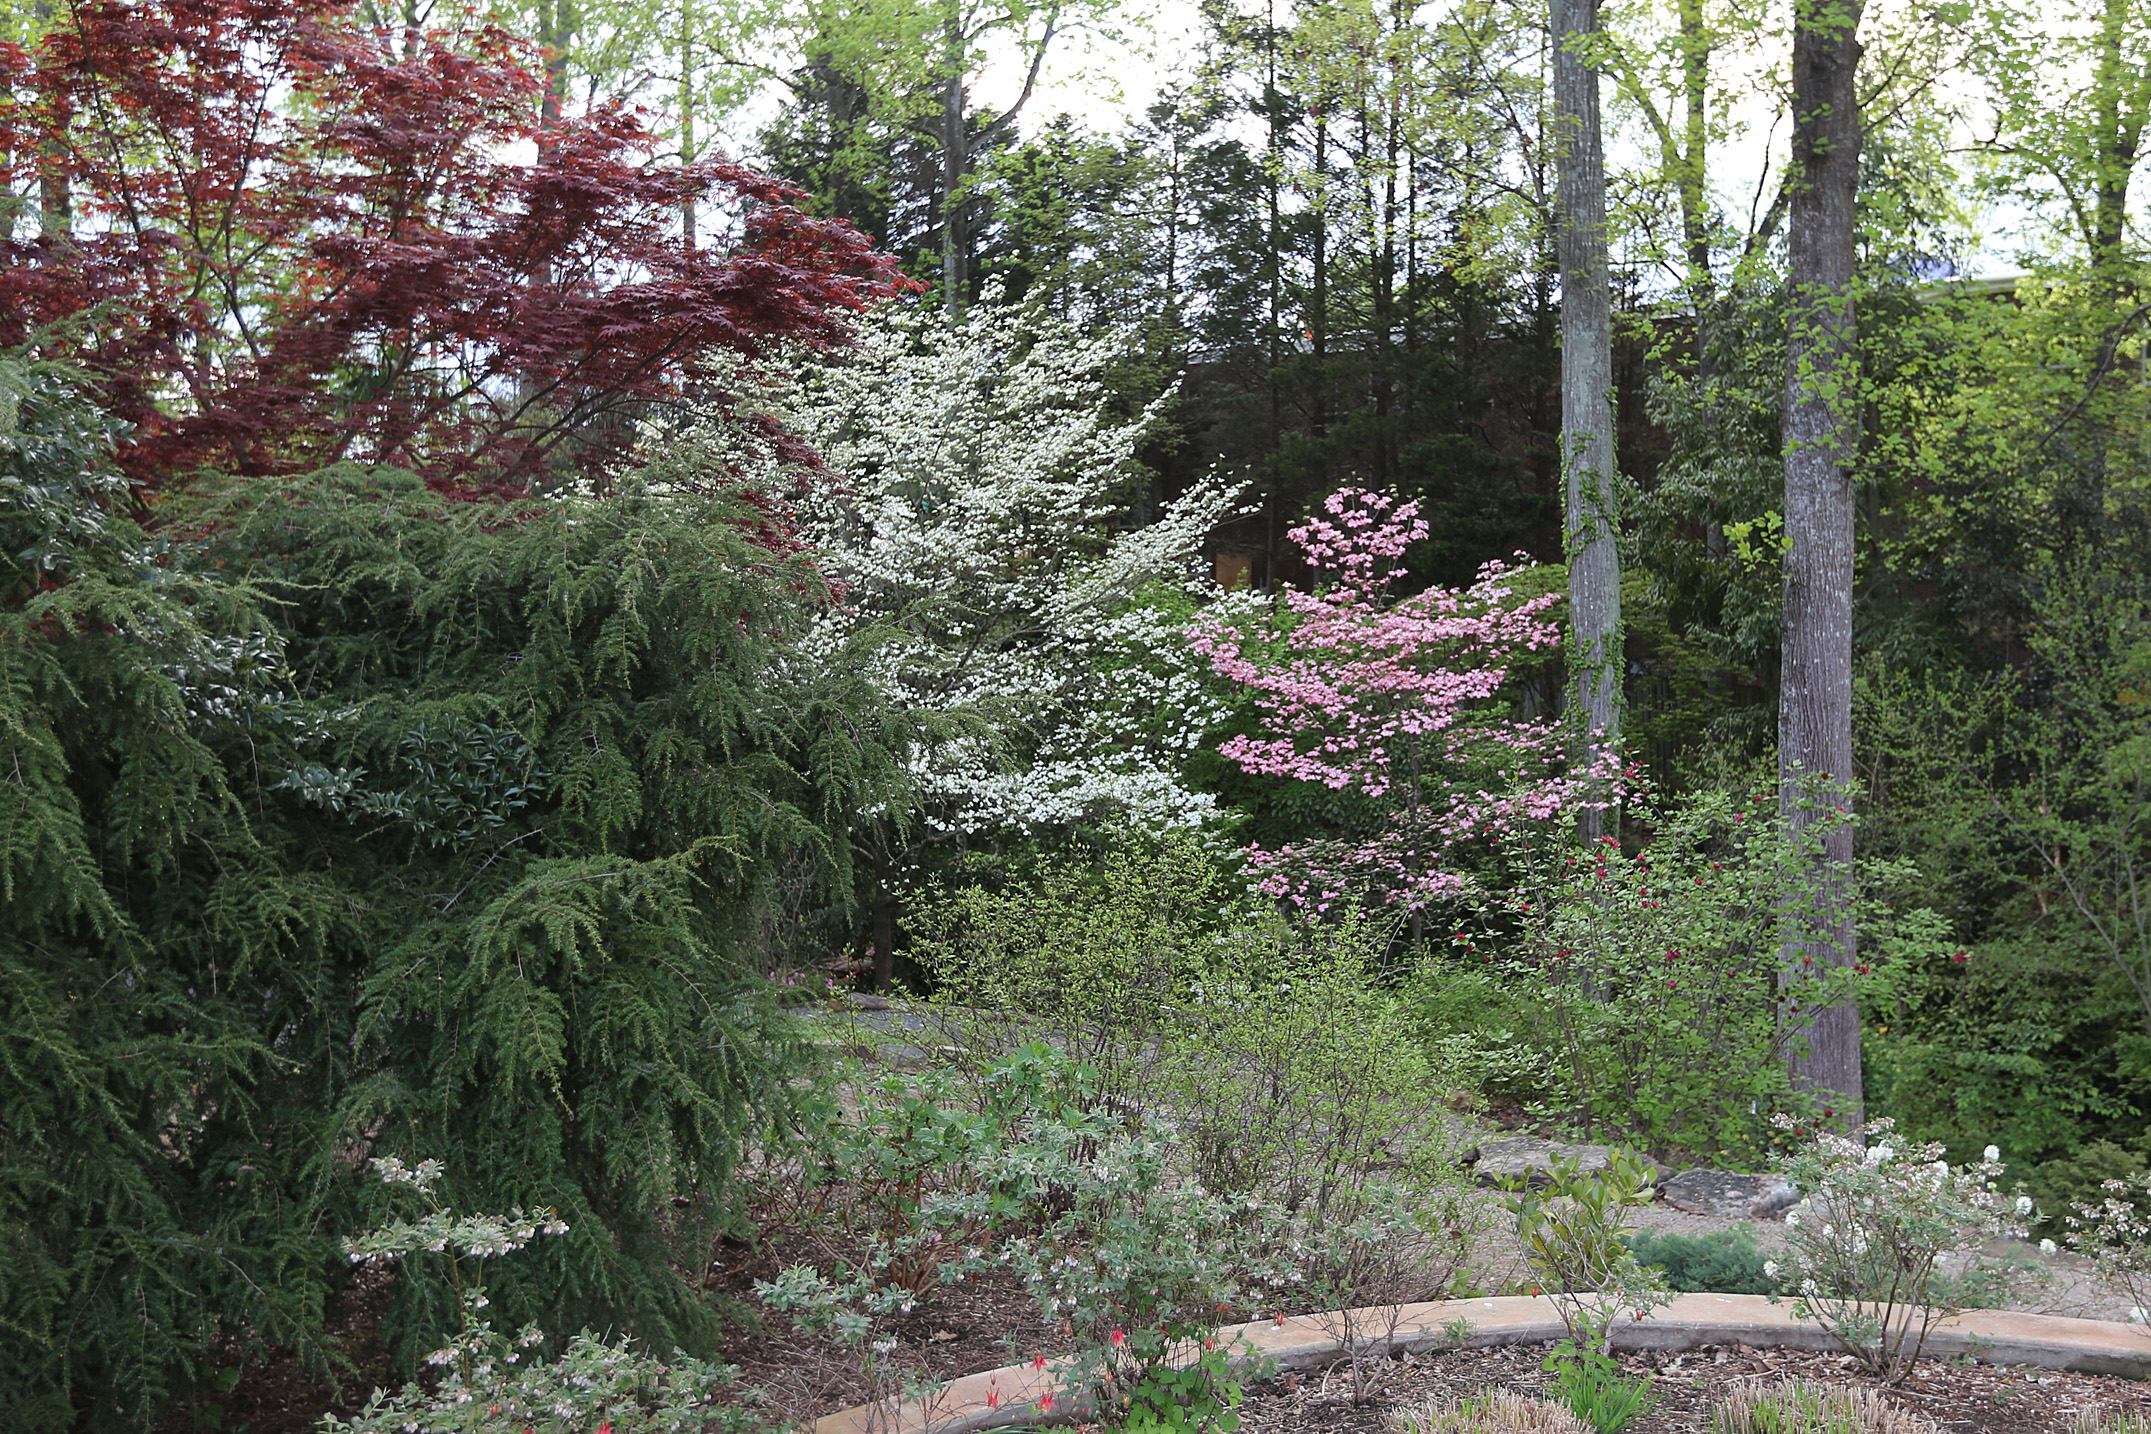 The Scientific Name is Cornus florida [= Benthamidia florida]. You will likely hear them called Flowering Dogwood. This picture shows the A pair of Flowering Dogwoods in the Suzie Harwood Garden, UNC Charlotte Botanical Gardens. of Cornus florida [= Benthamidia florida]